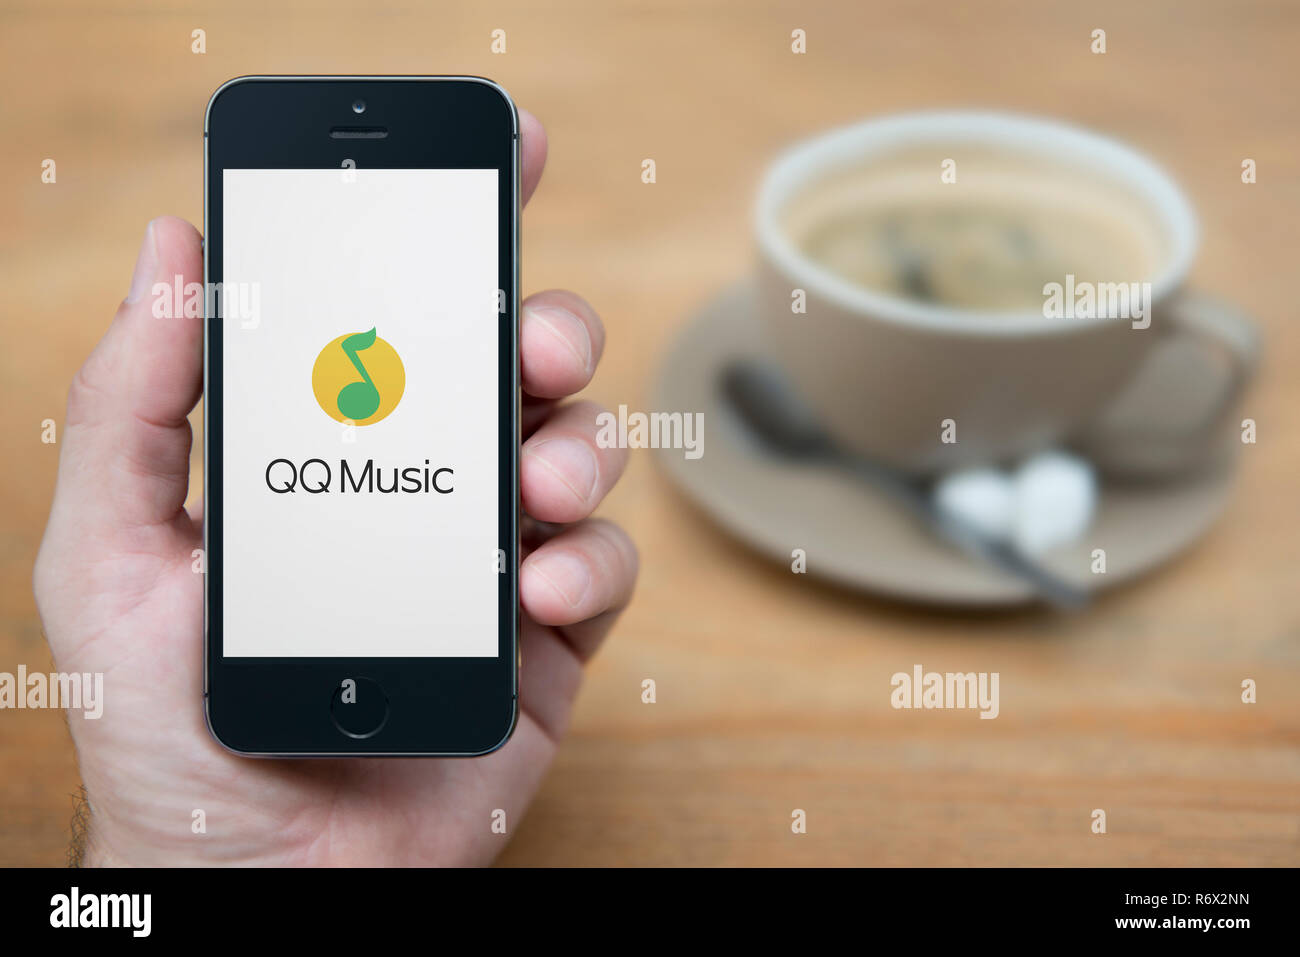 A man looks at his iPhone which displays the QQ Music logo